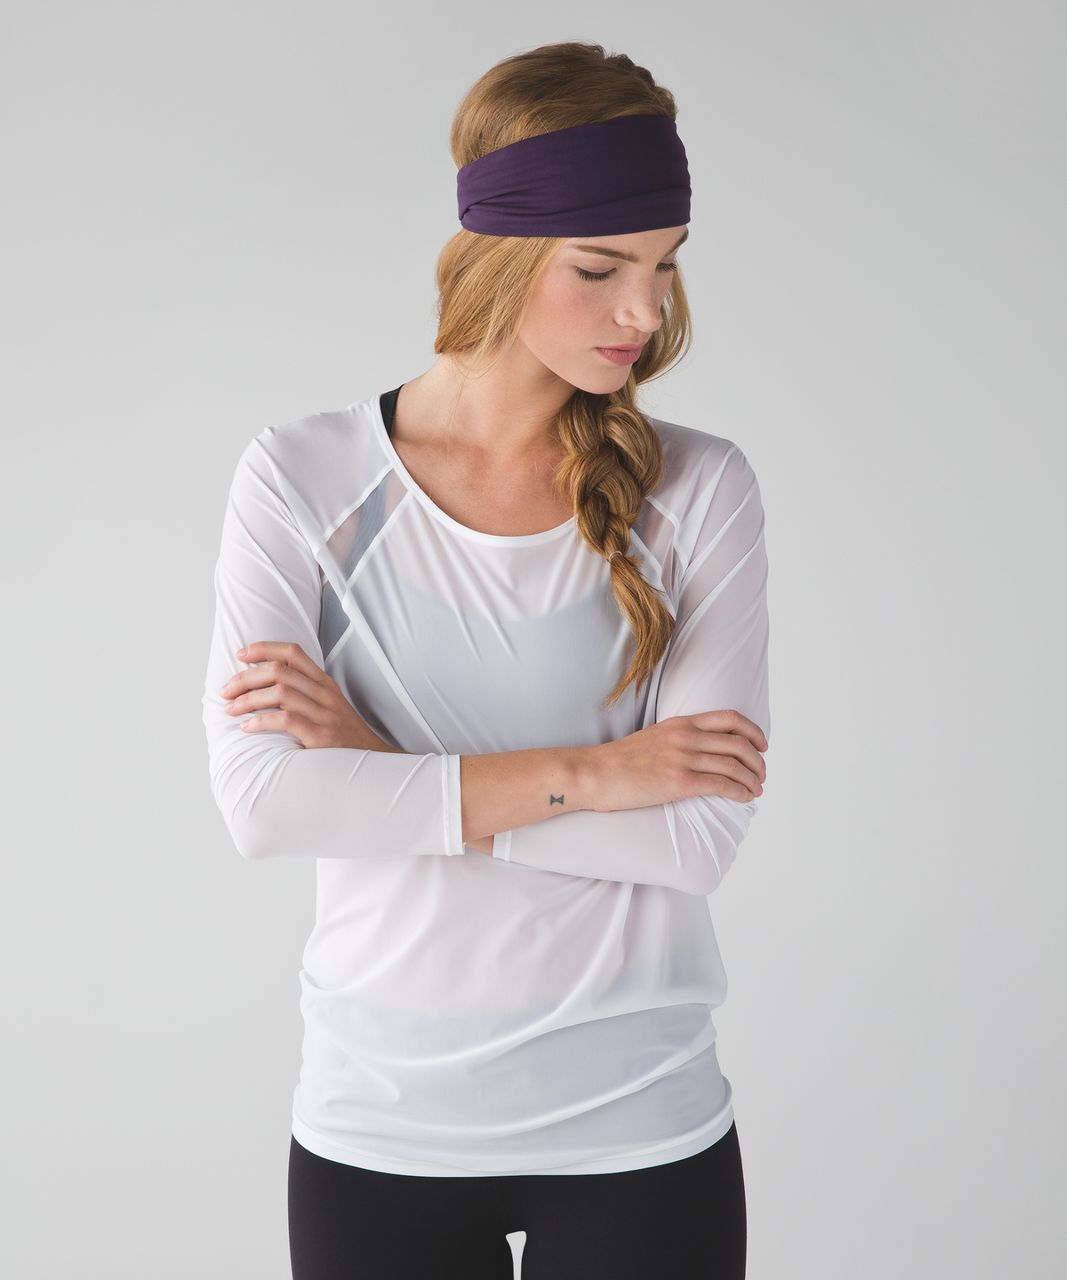 Lululemon Fringe Fighter Headband - Deep Zinfandel   Lilac - lulu fanatics b1d90b974be